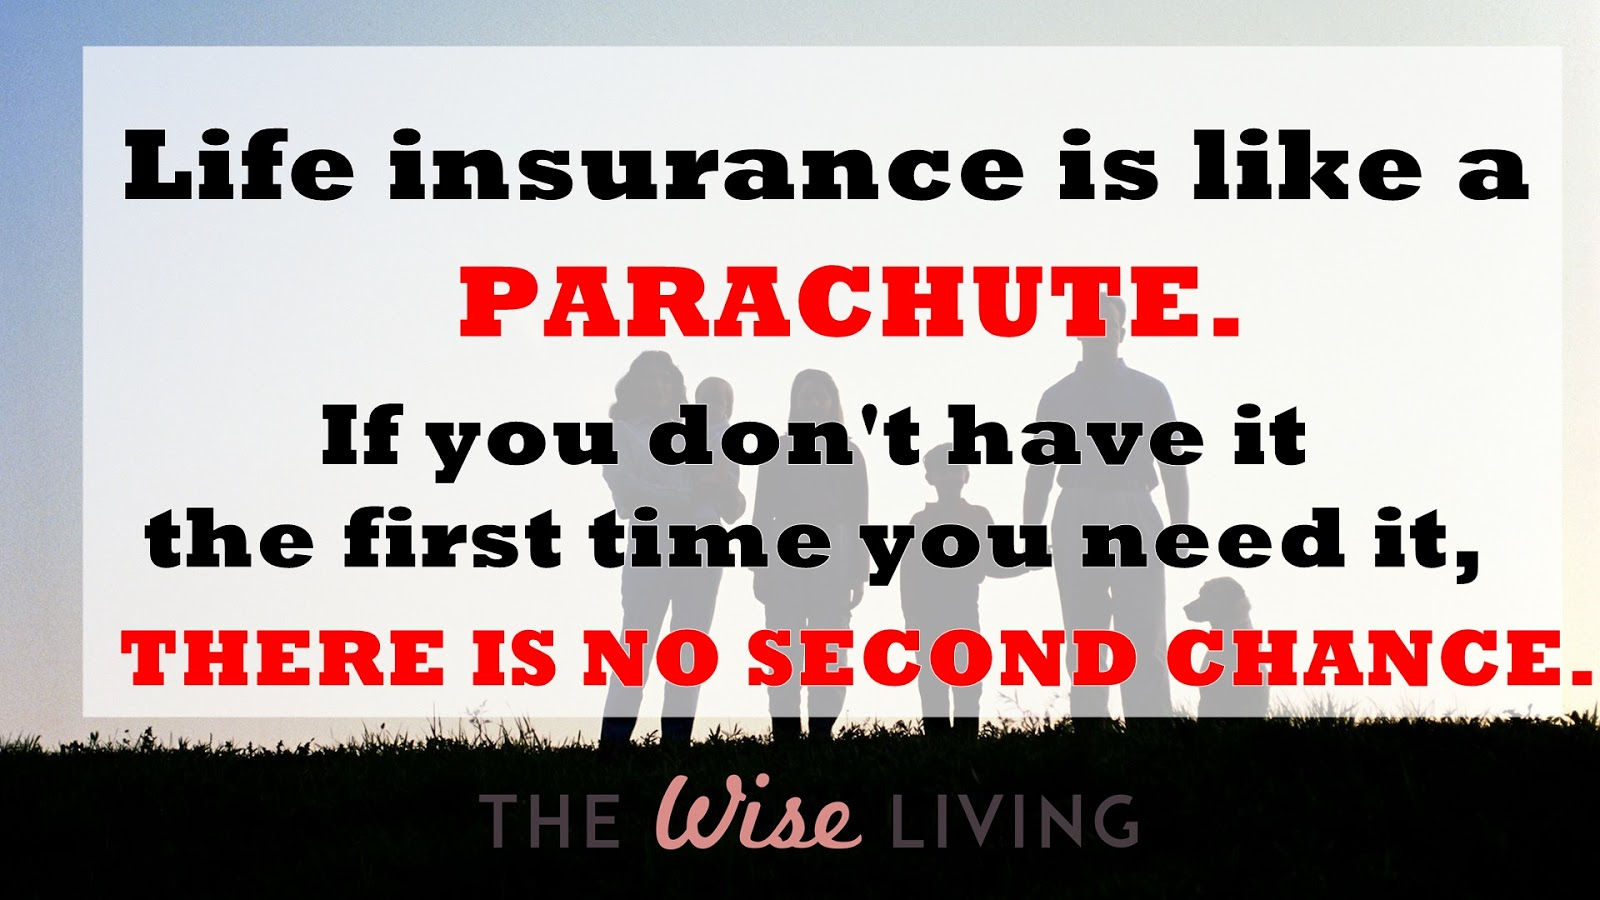 Image of: Carinsurance Ca You Can Convert To Vul So Its Okay If You Can Only Afford The Minimum Vul Coverage Then Do So You Can Add Coverage In The Future The Wise Living Everyday Items That Are More Expensive Than Opening Vul Policy